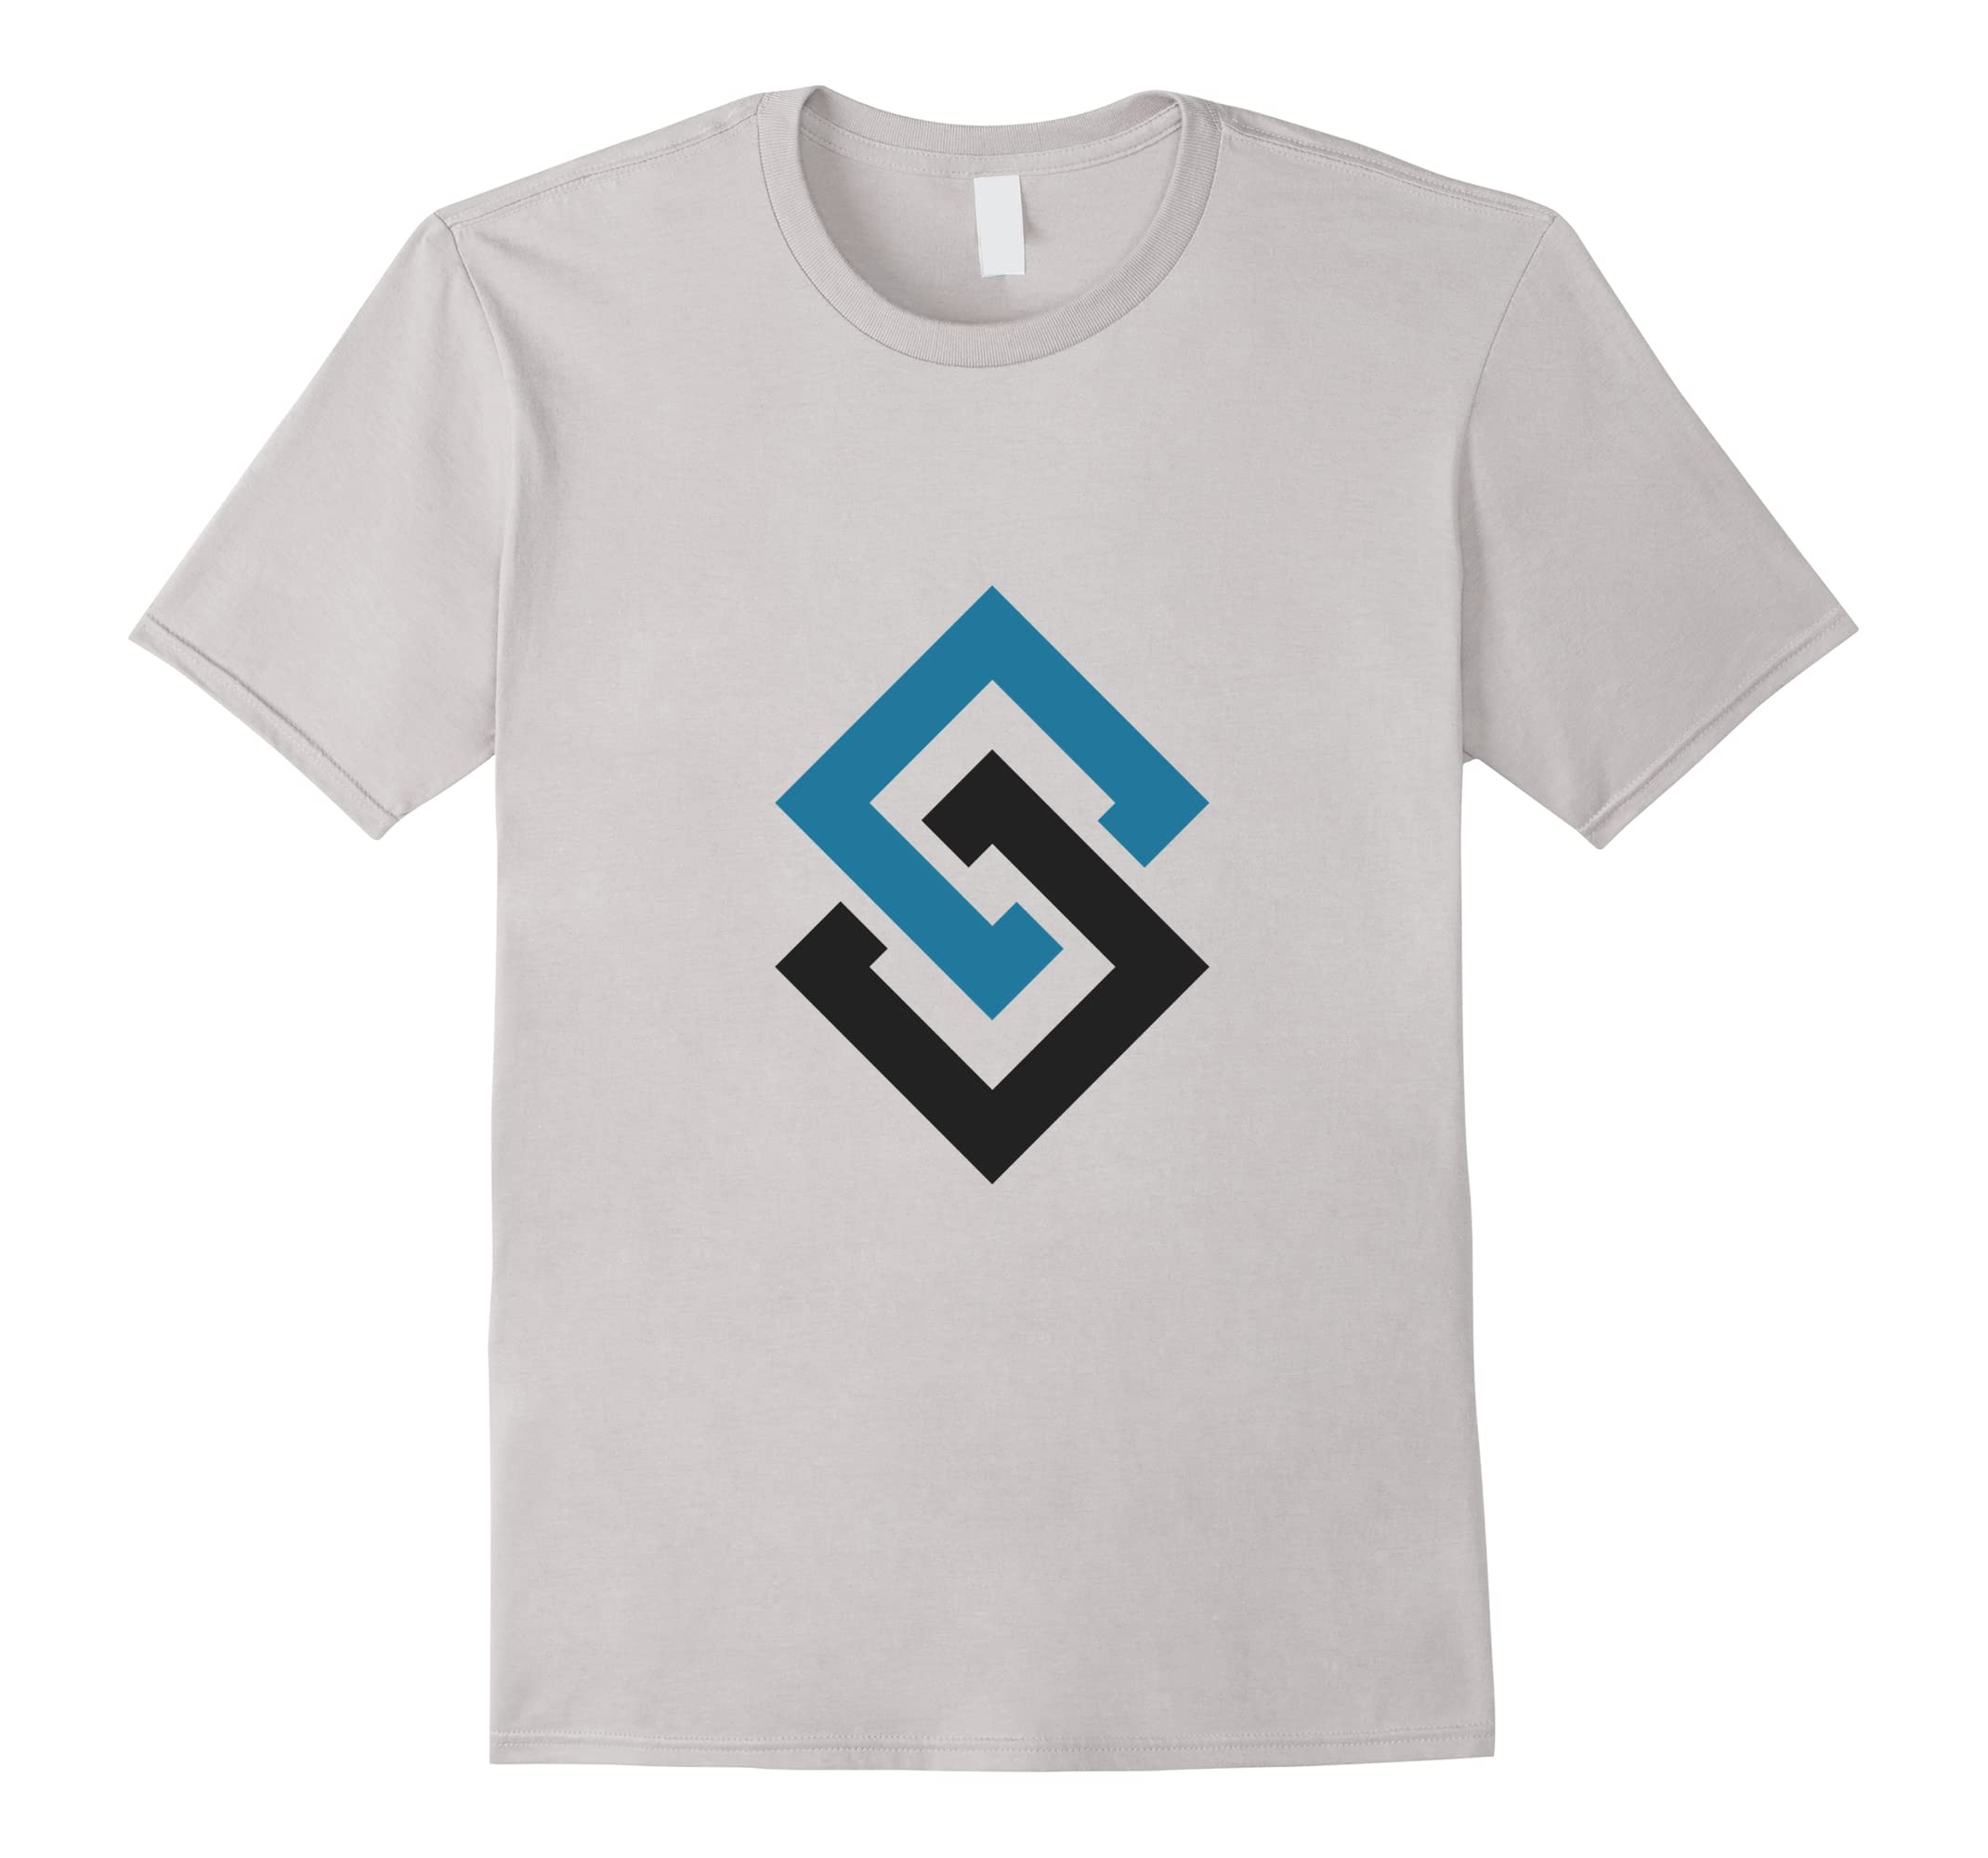 Geometric Letter S T Shirt Design Rt Rateeshirt